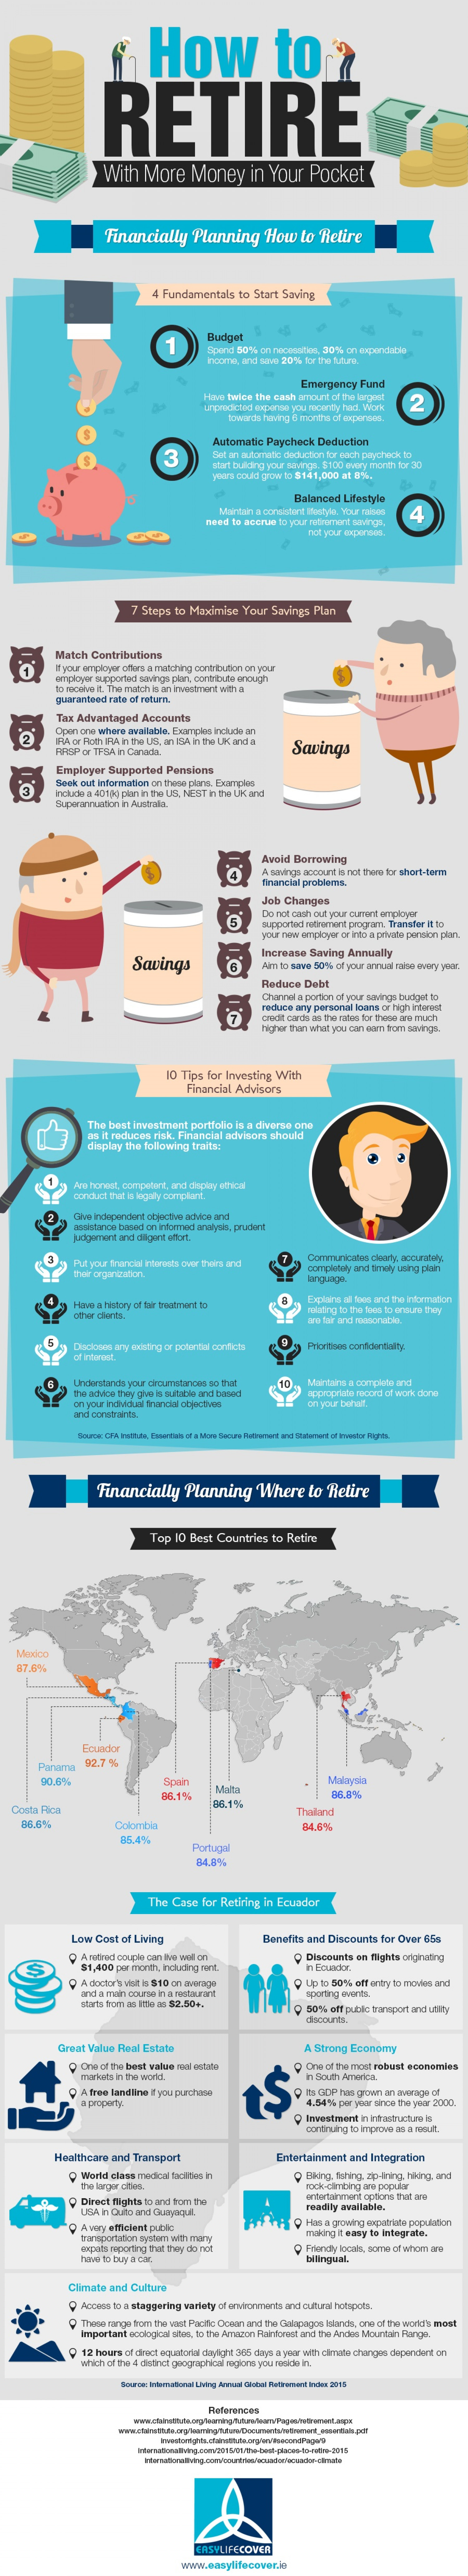 How to Retire With More Money in Your Pocket Infographic